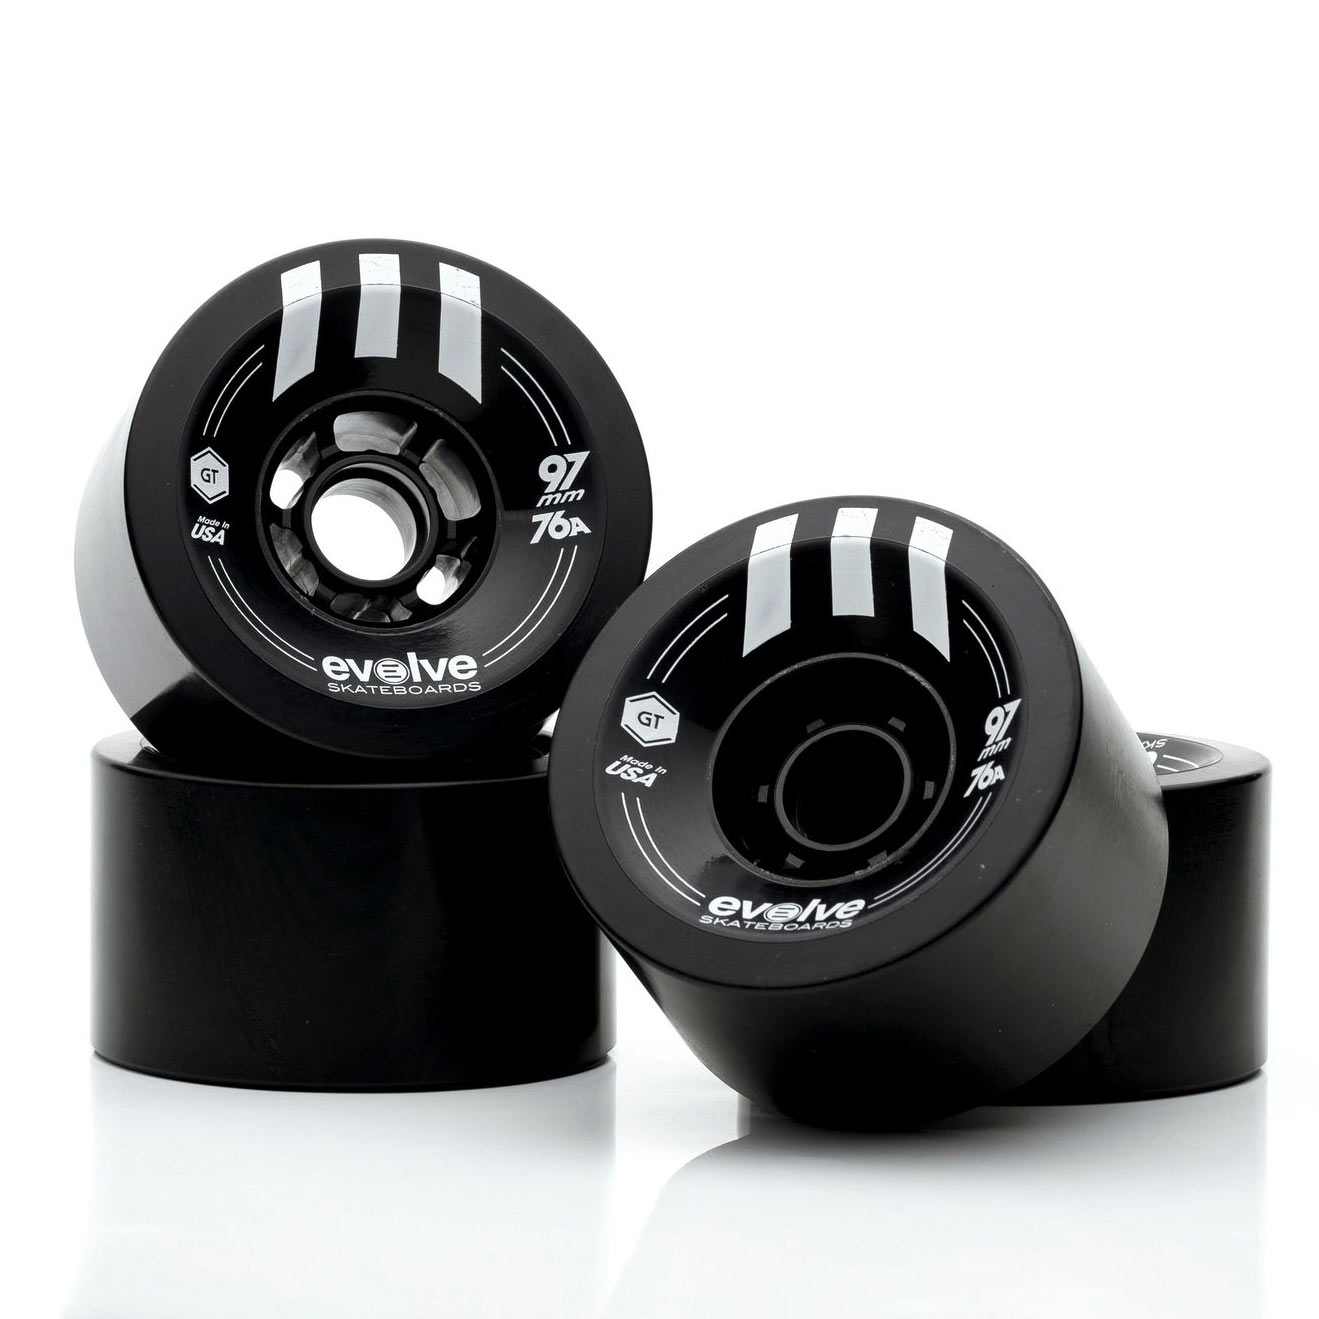 Evolve-Black-Wheels-97mm-76a